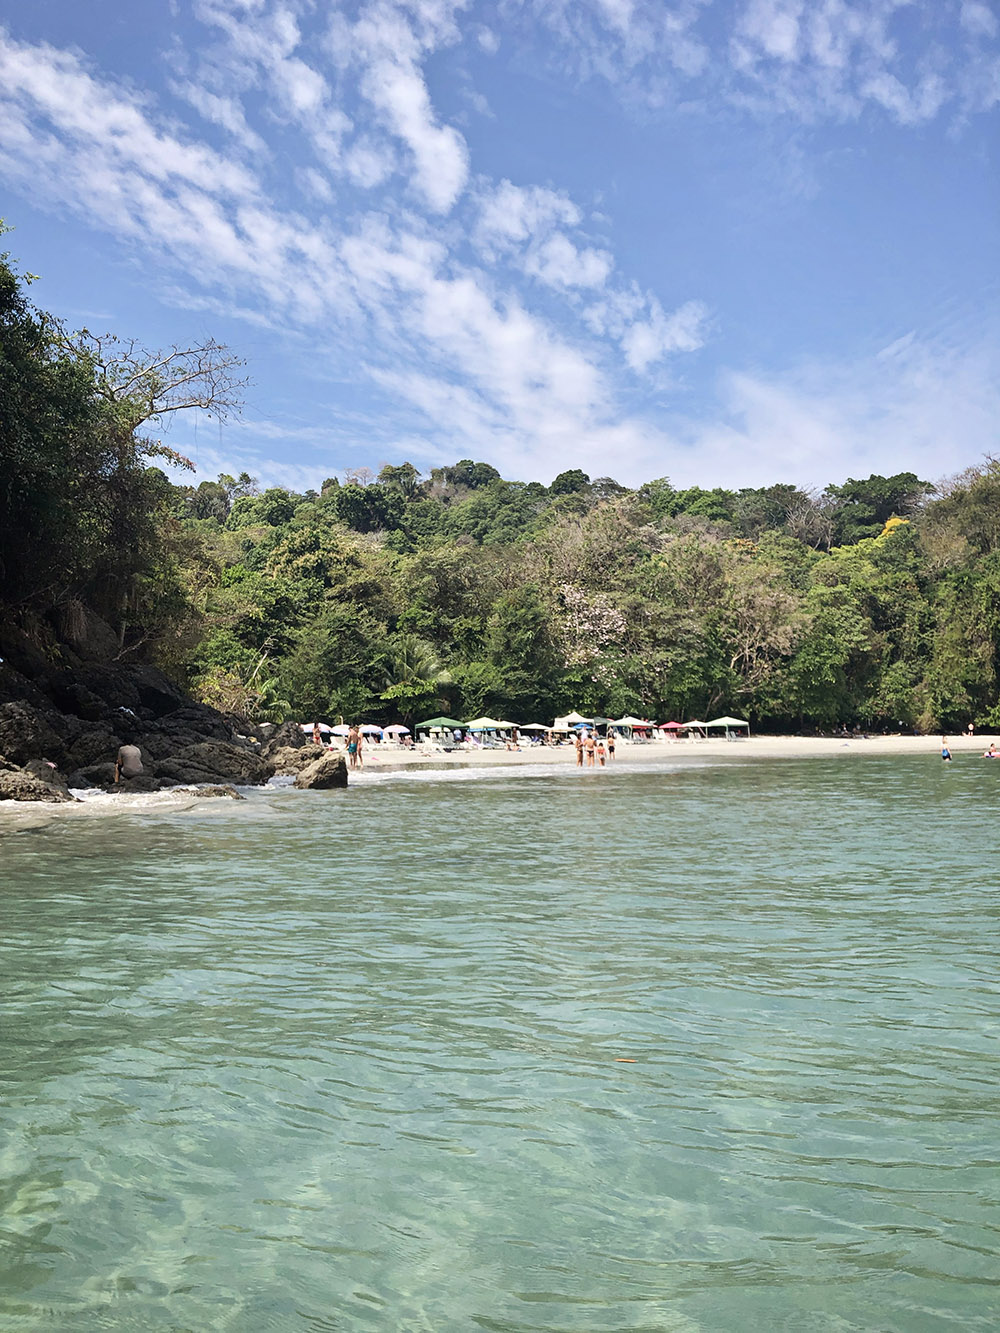 A secret beach hides around the corner in Manuel Antonio